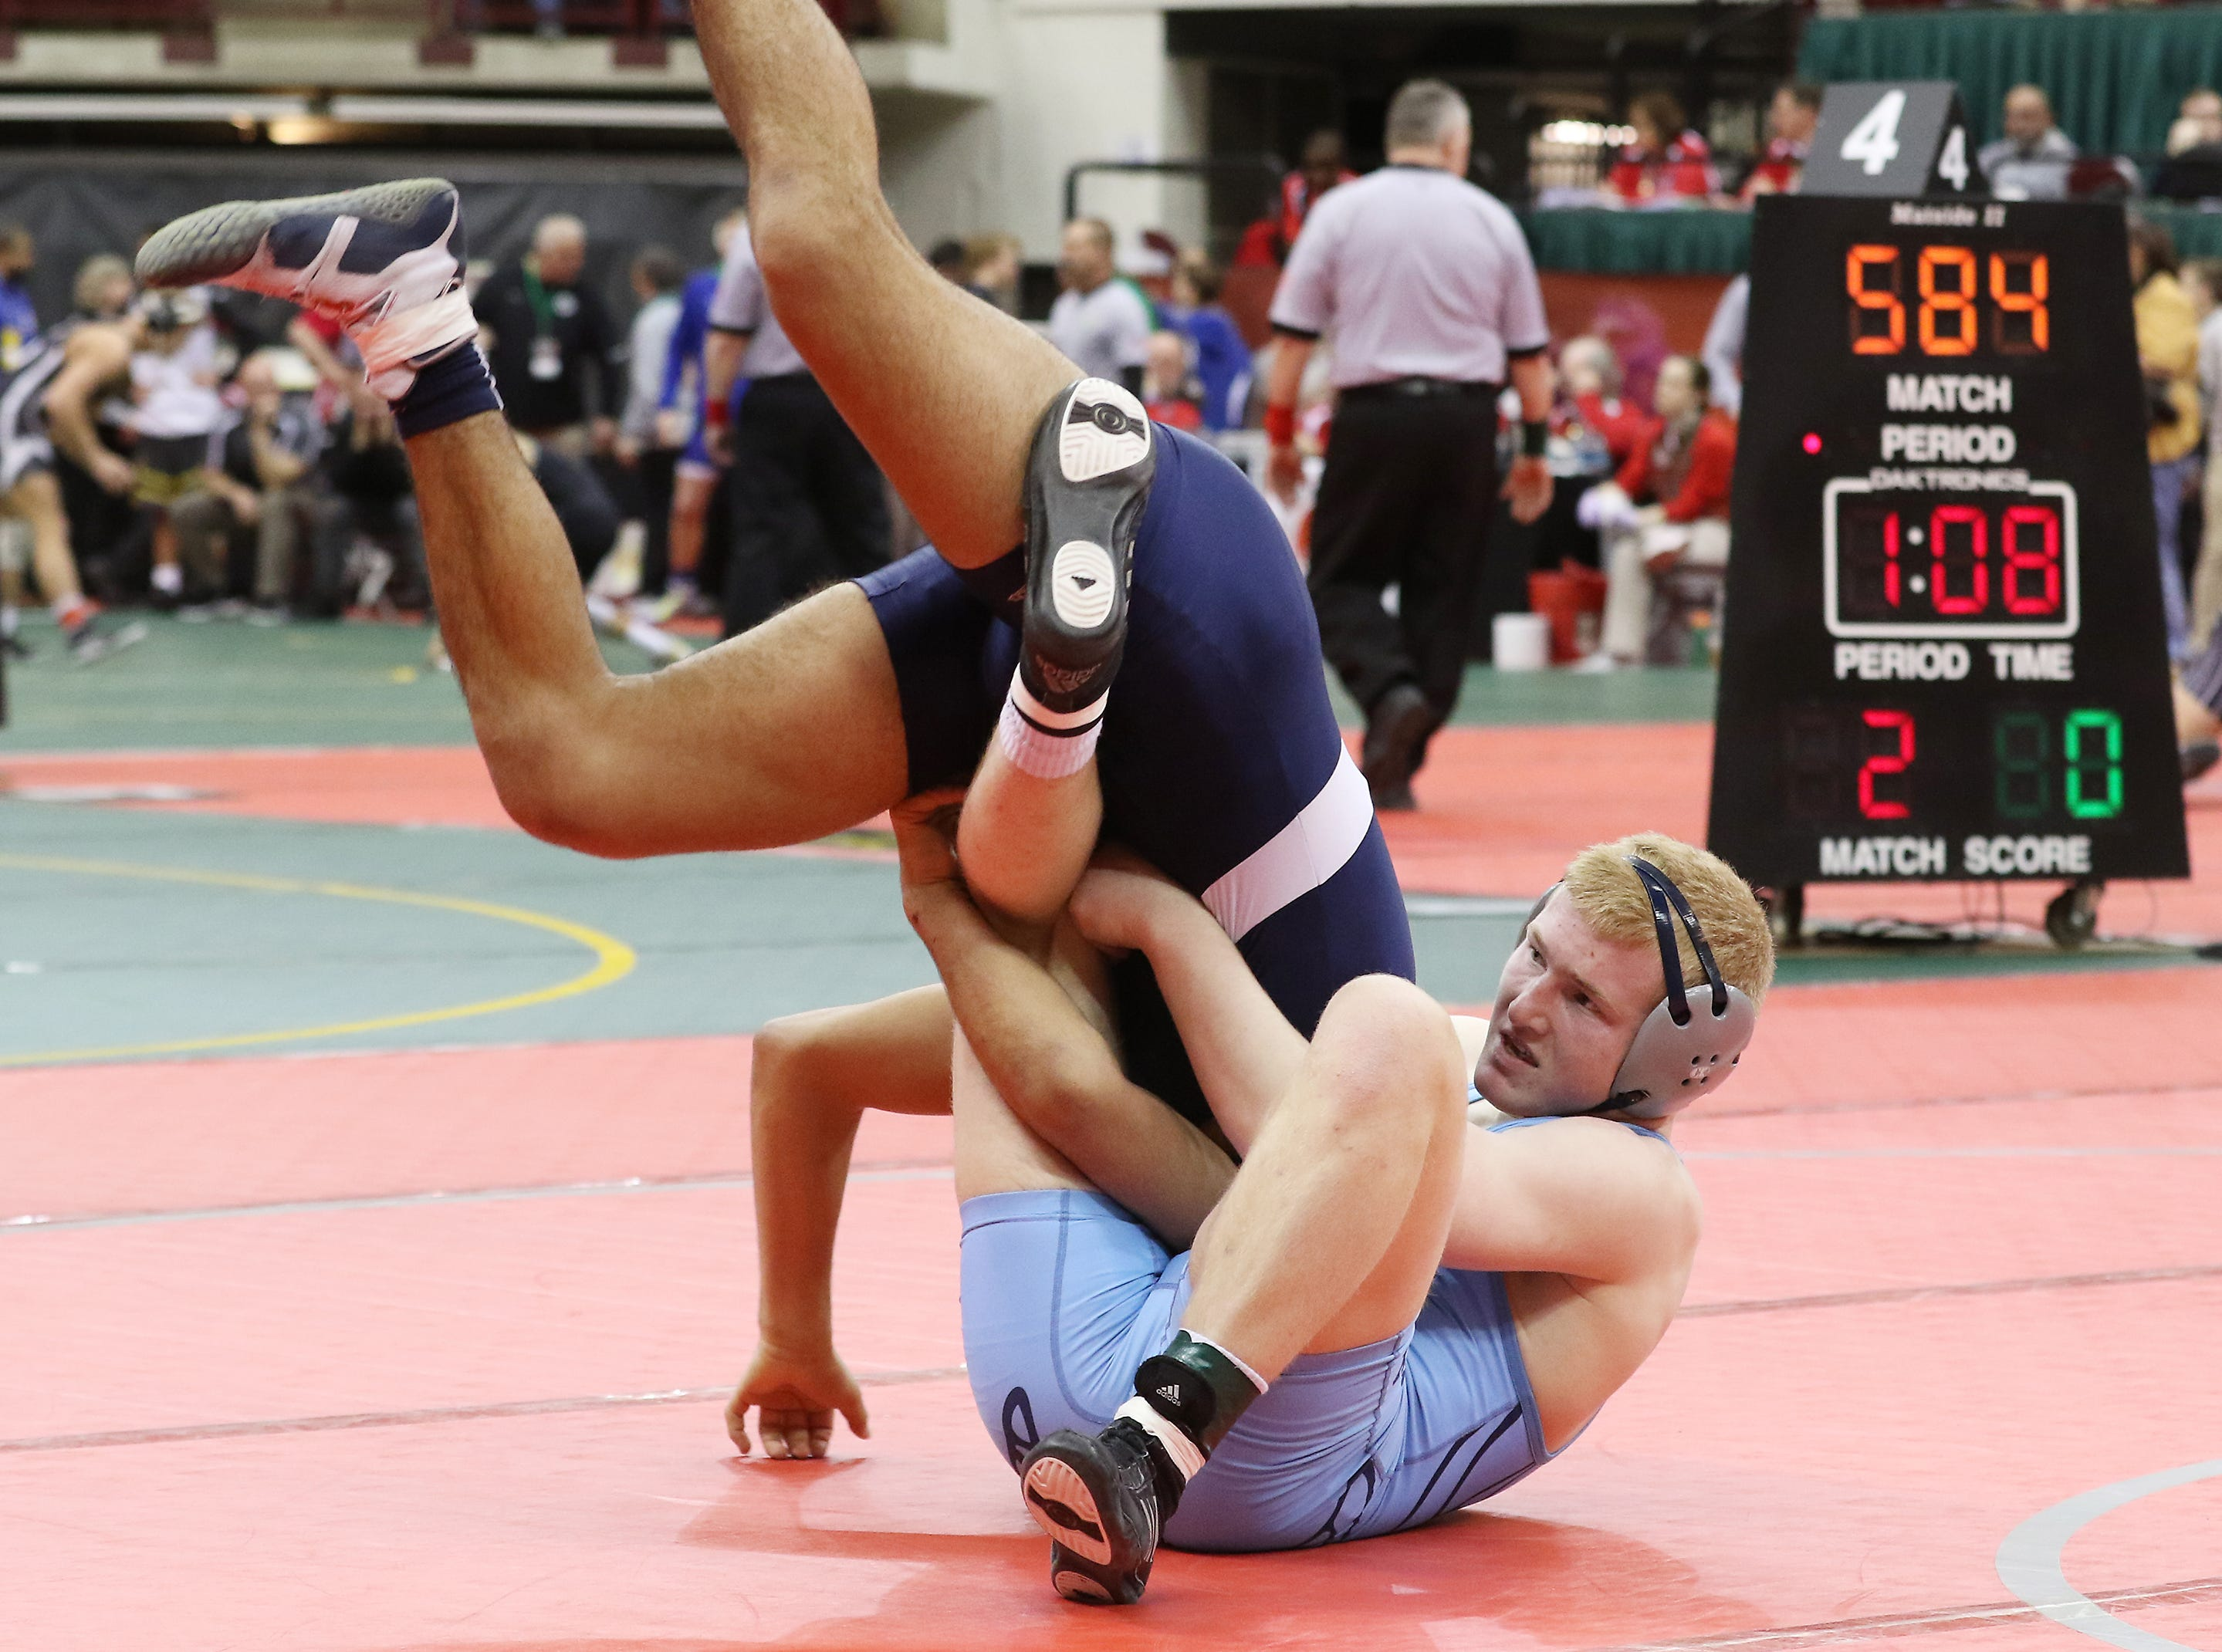 Caledonia River Valley's Hadyn Danals wrestles Norwalk's Ethan Hernandez in the 160 pound weight class.